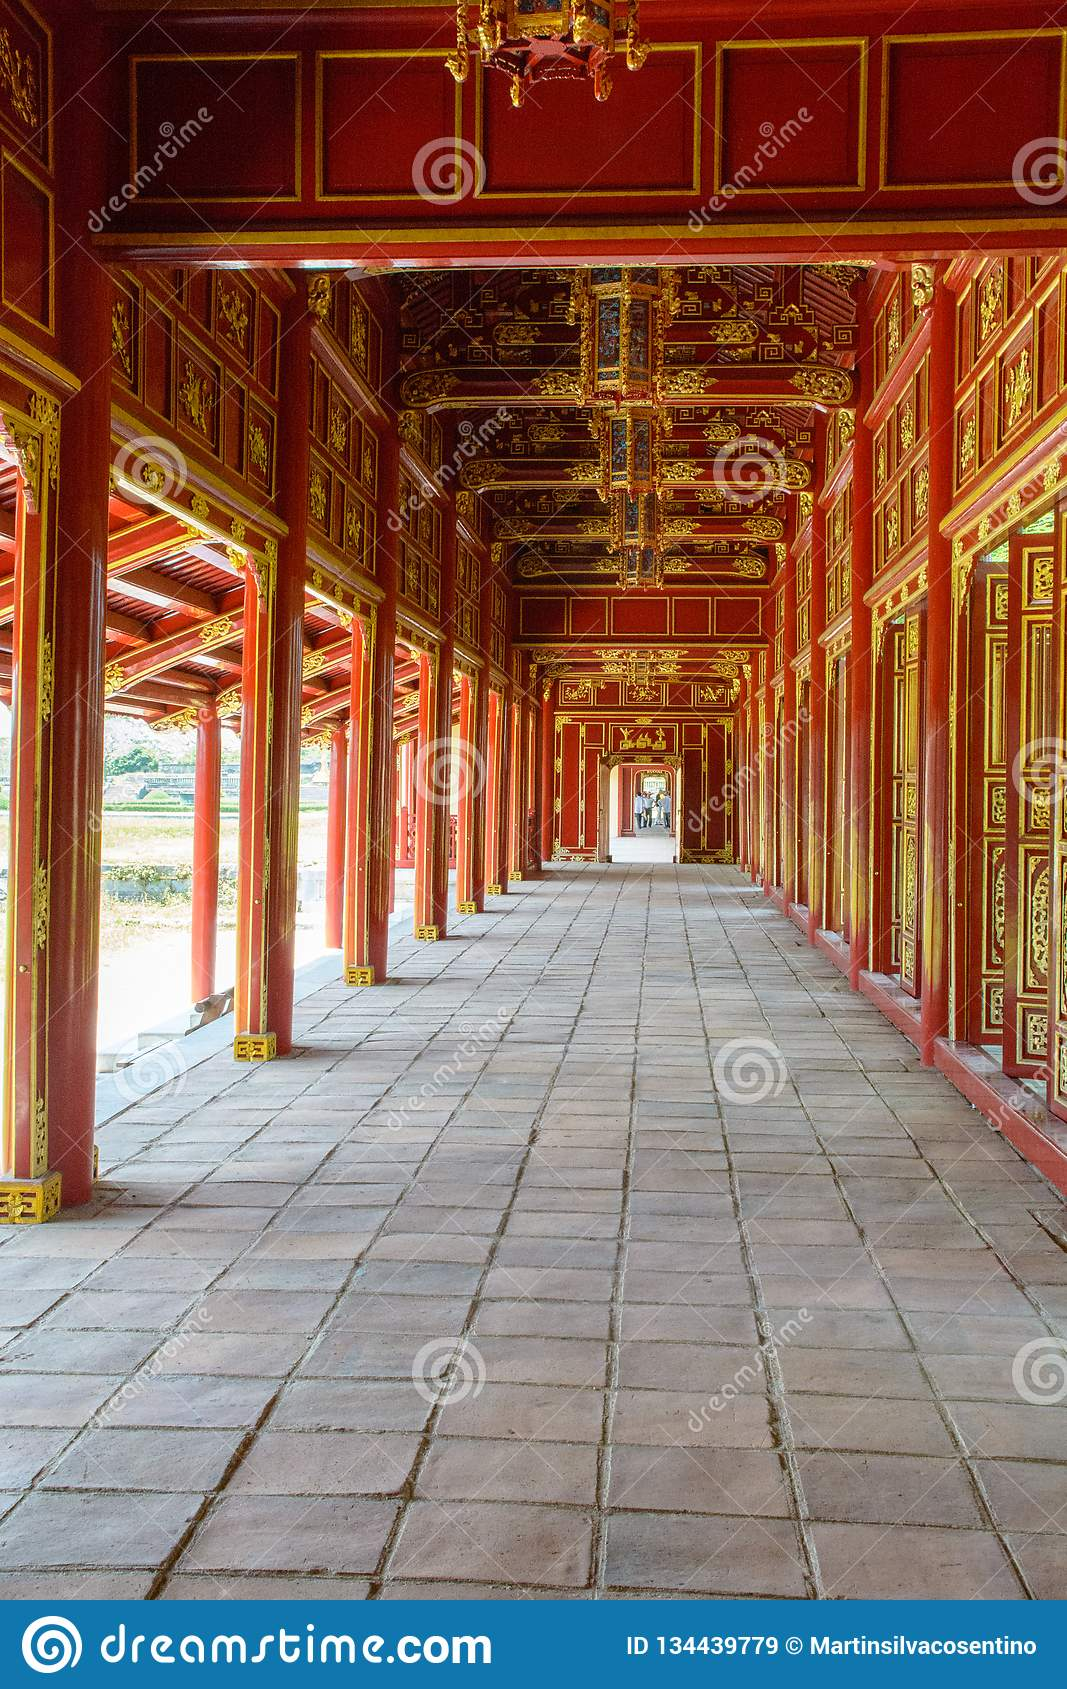 Wonderful view of the Meridian Gate to the Imperial City with the Purple Forbidden City within the Citadel in Hue, Vietnam